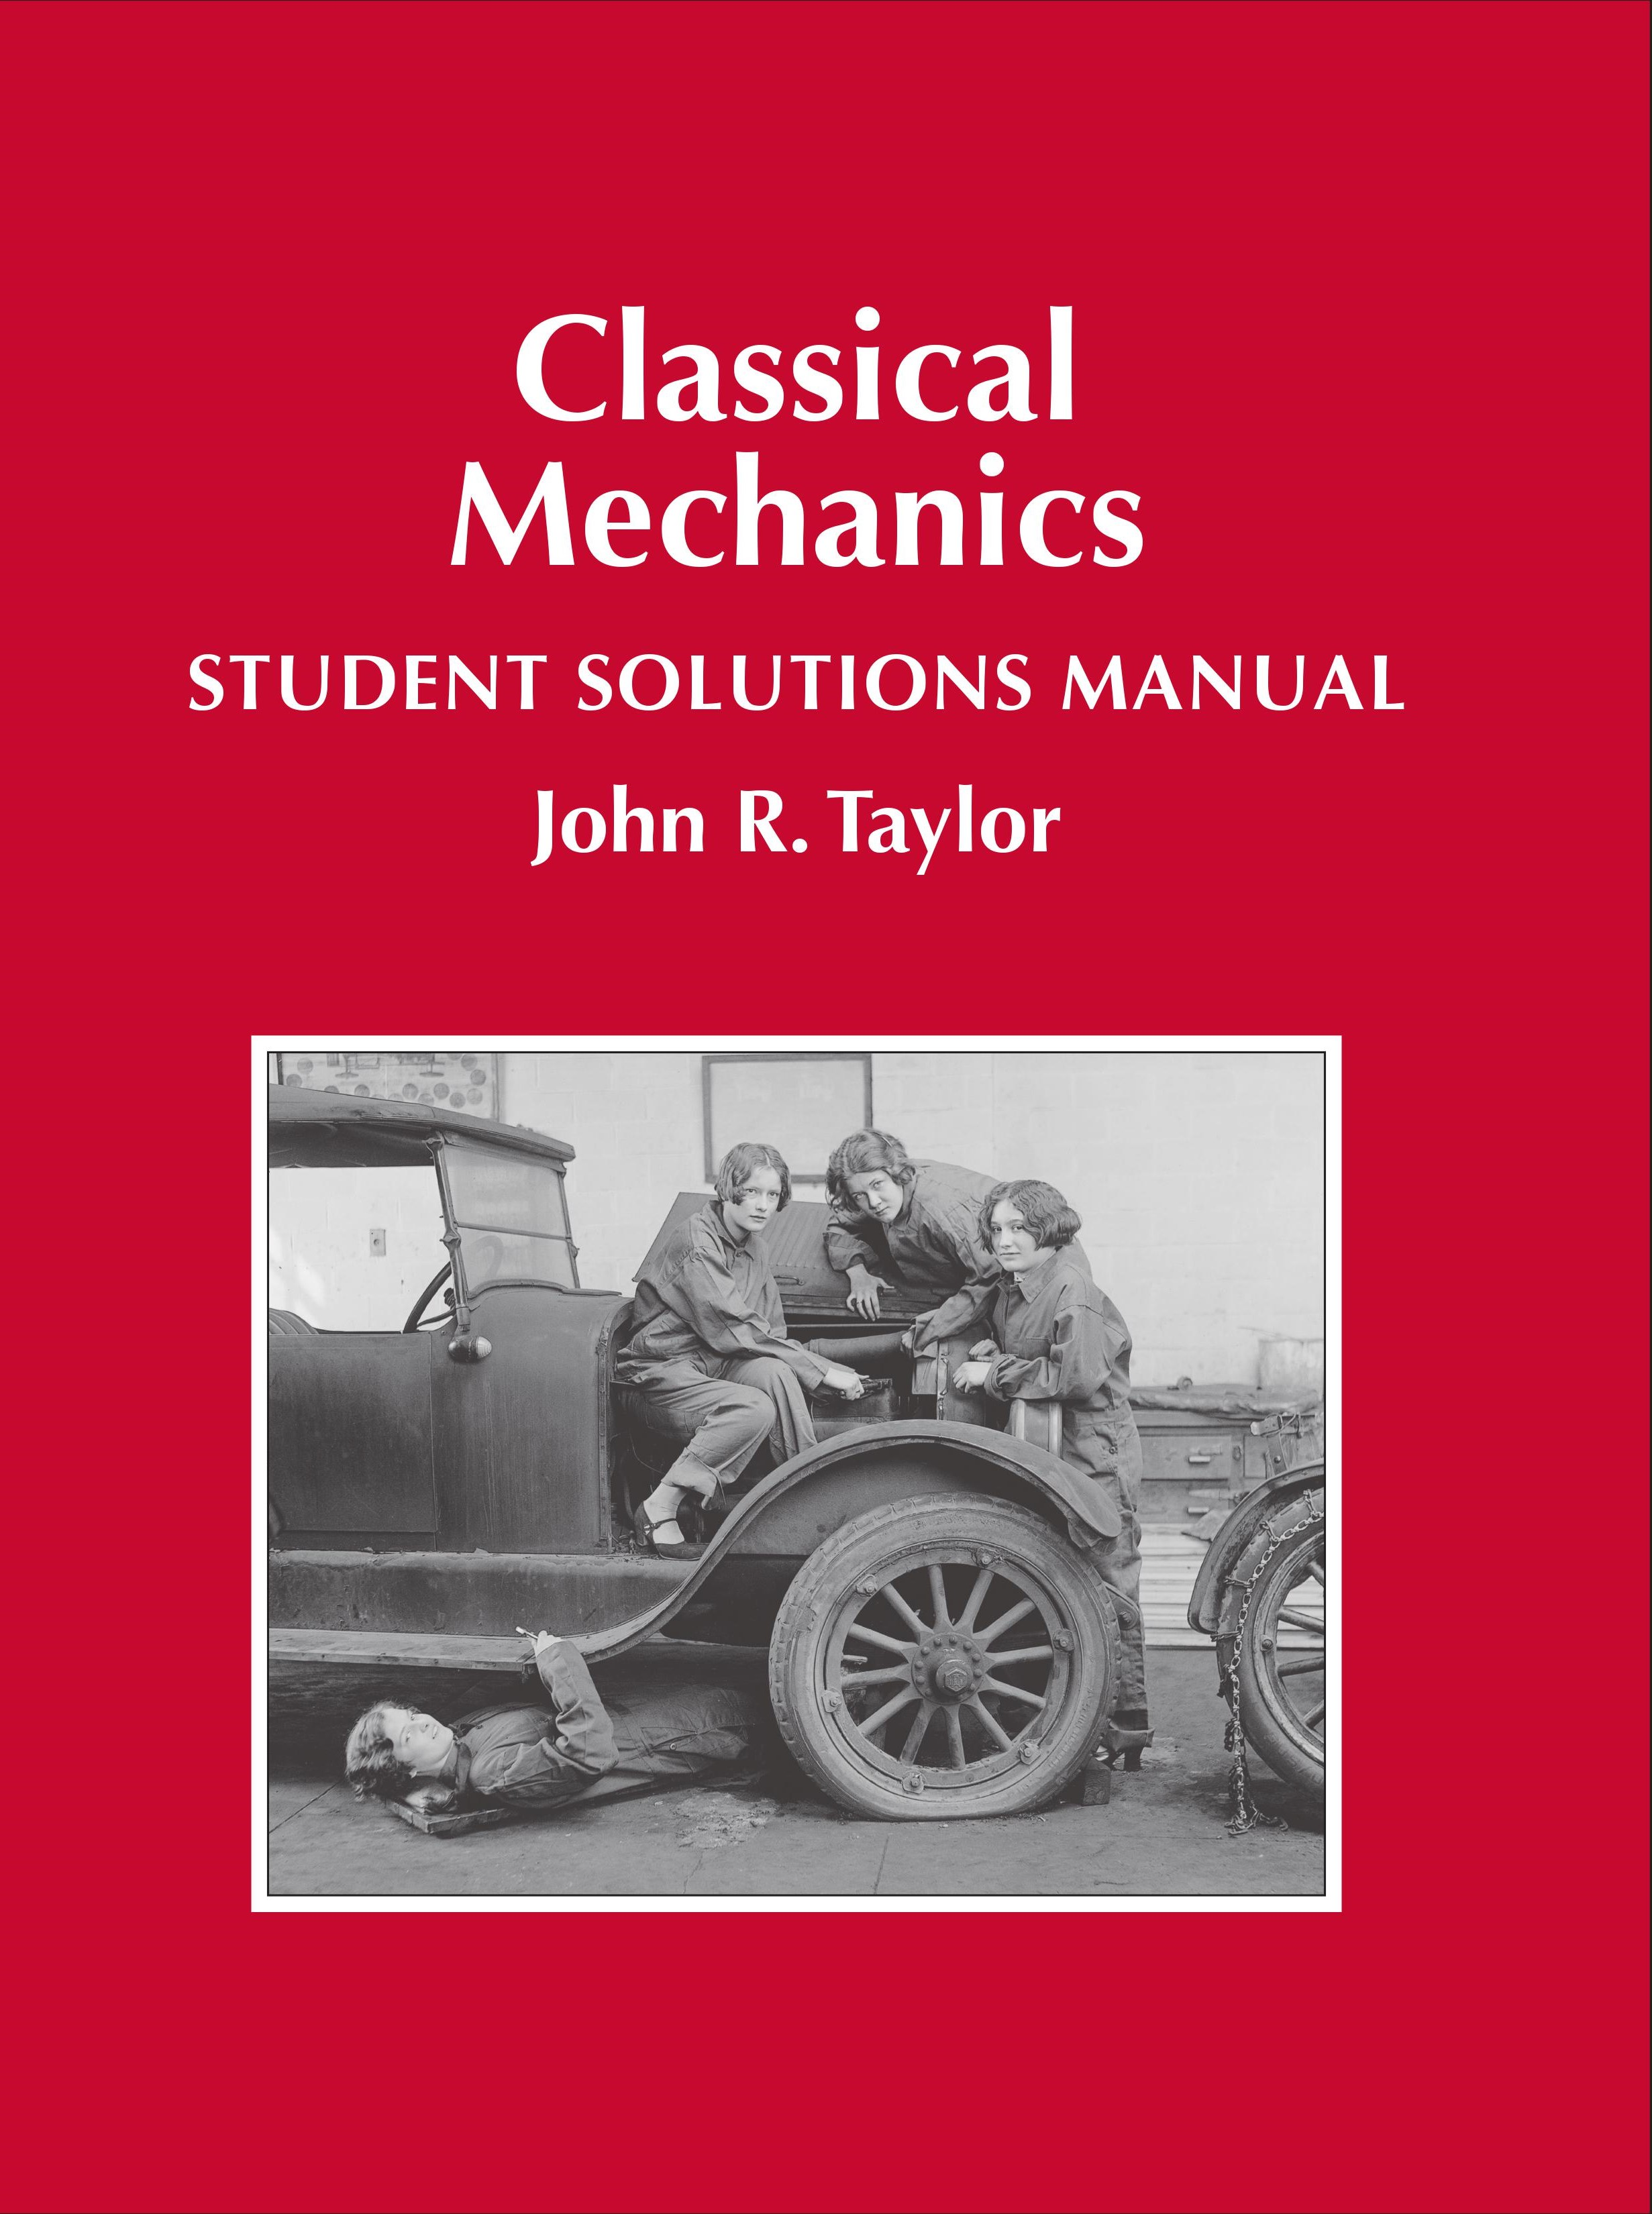 Physics Classical Mechanics Manual Guide